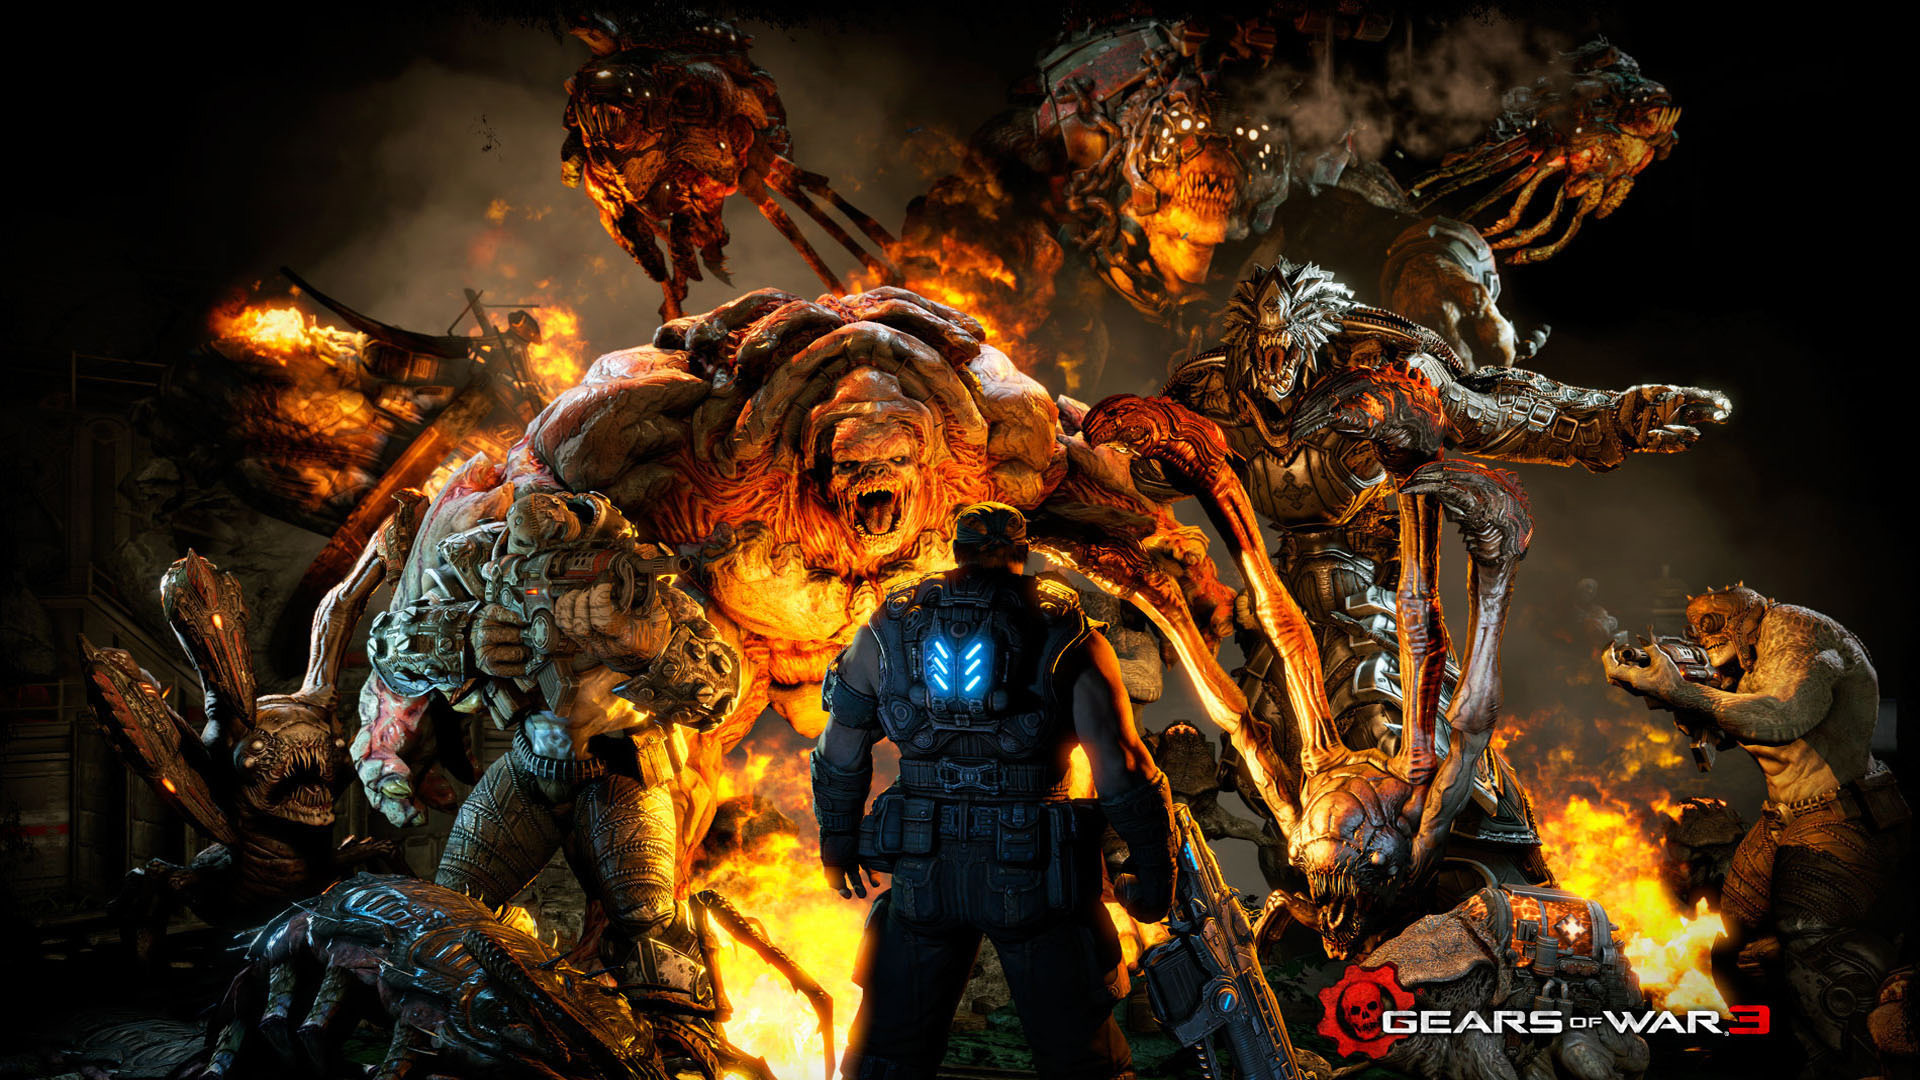 Gears of War 3 Wallpaper Xbox One